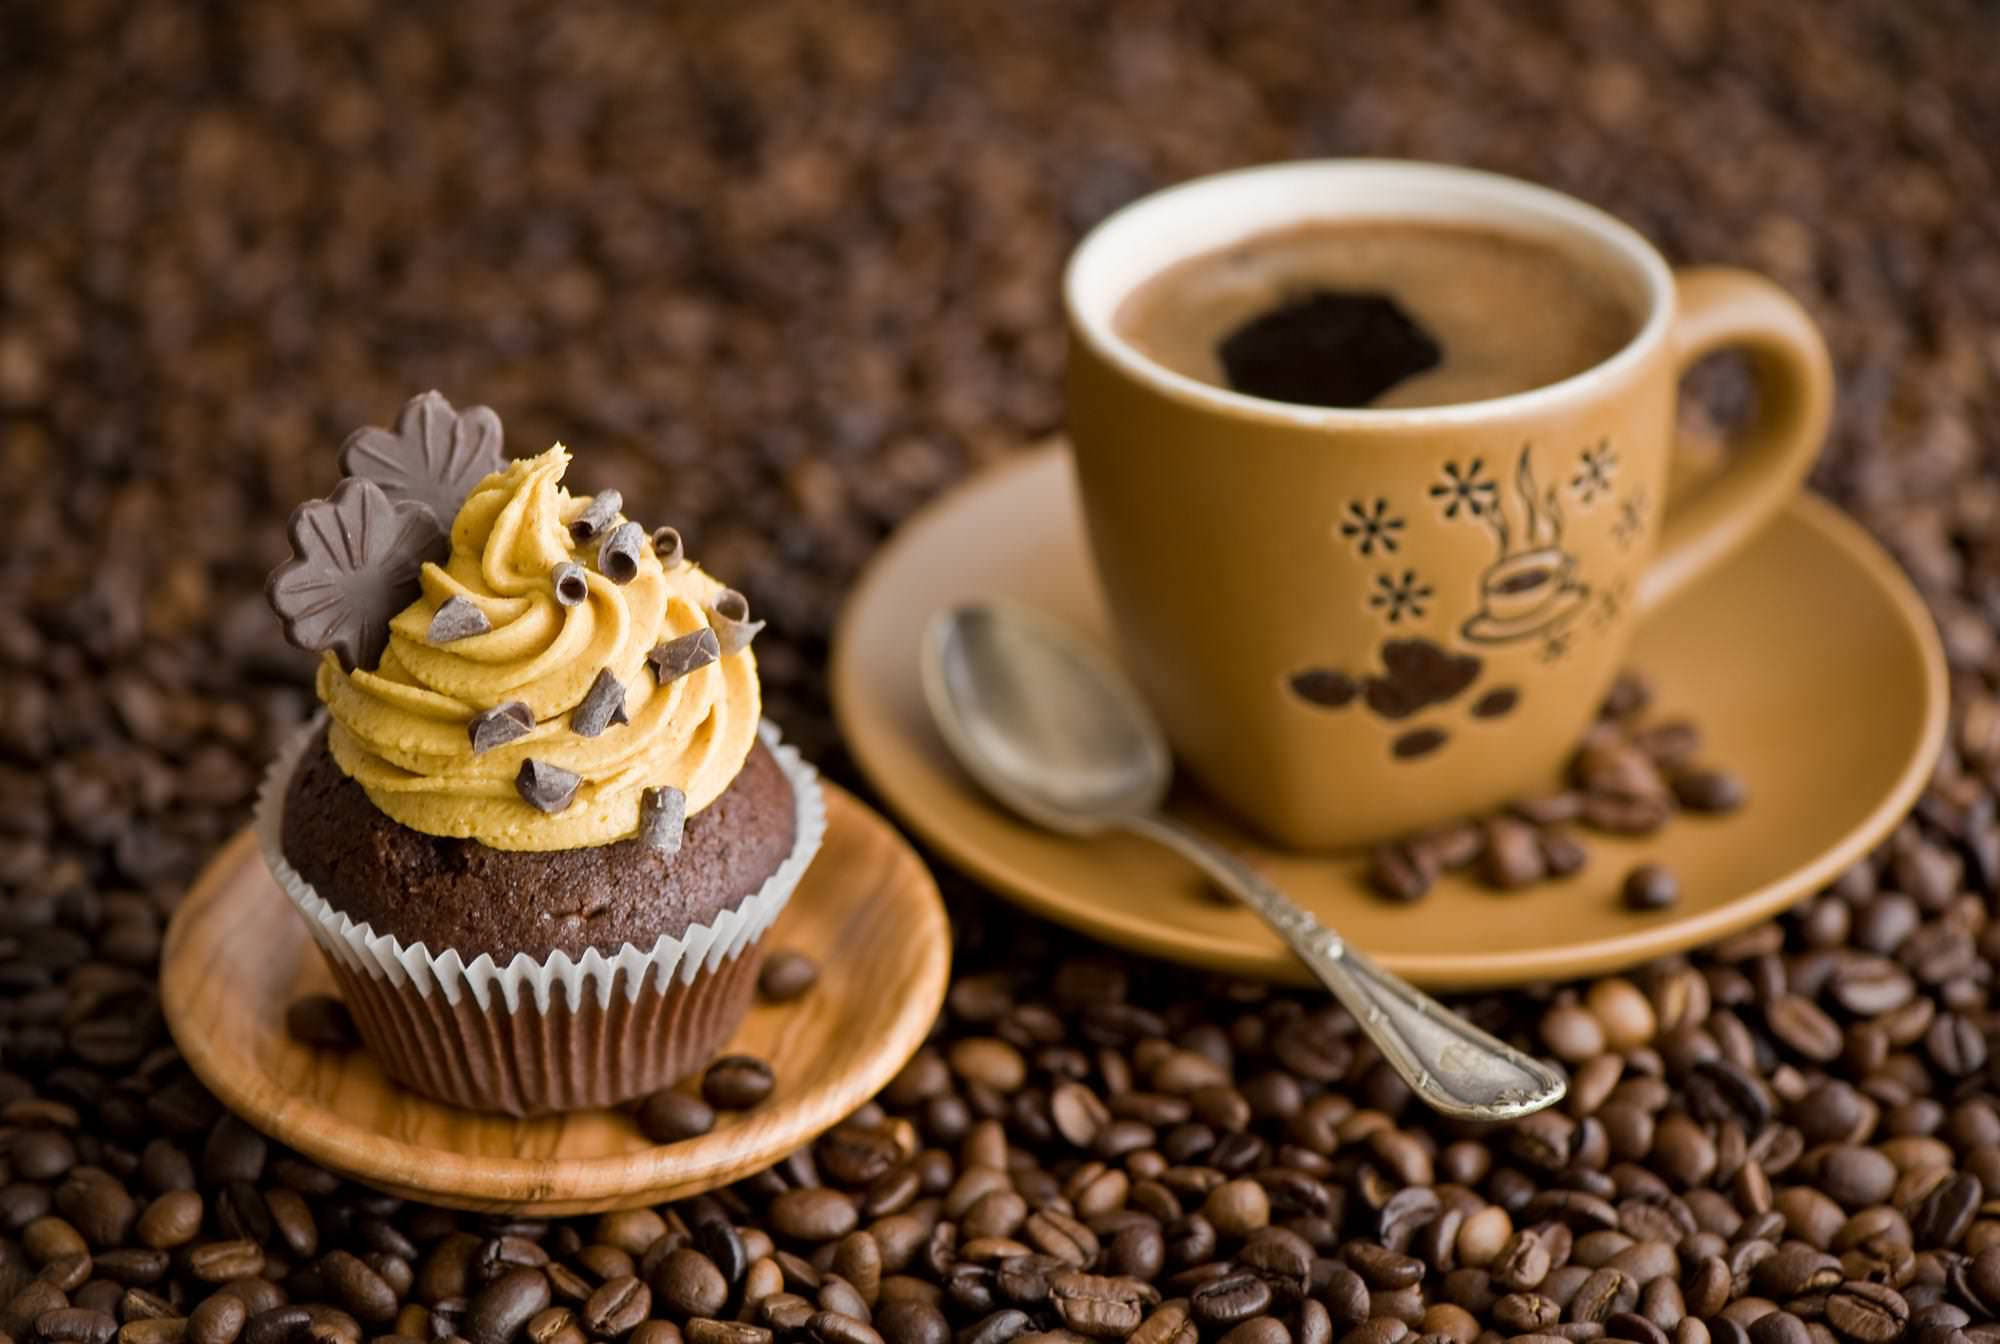 Cup Cake with Coffee Wallpaper